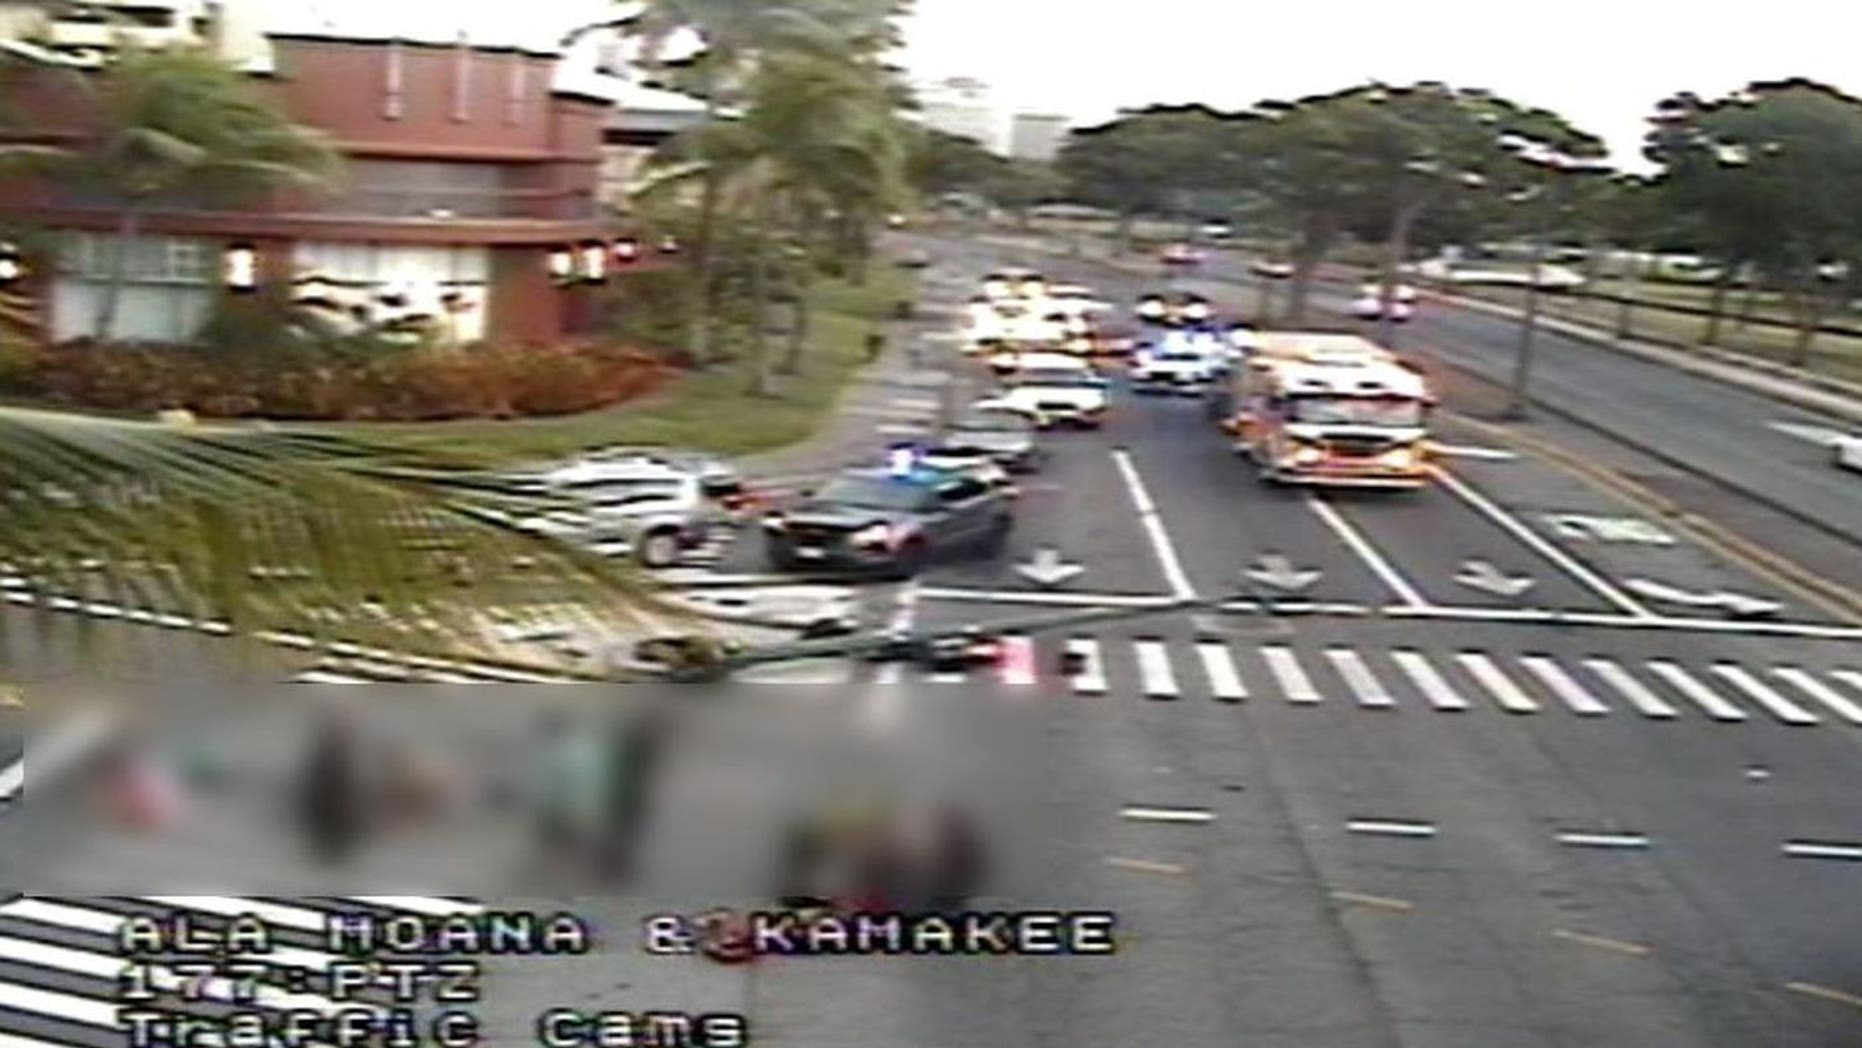 At least three people were killed and five more were taken to the hospital after a deadly collision in a Honolulu neighborhood on Monday.